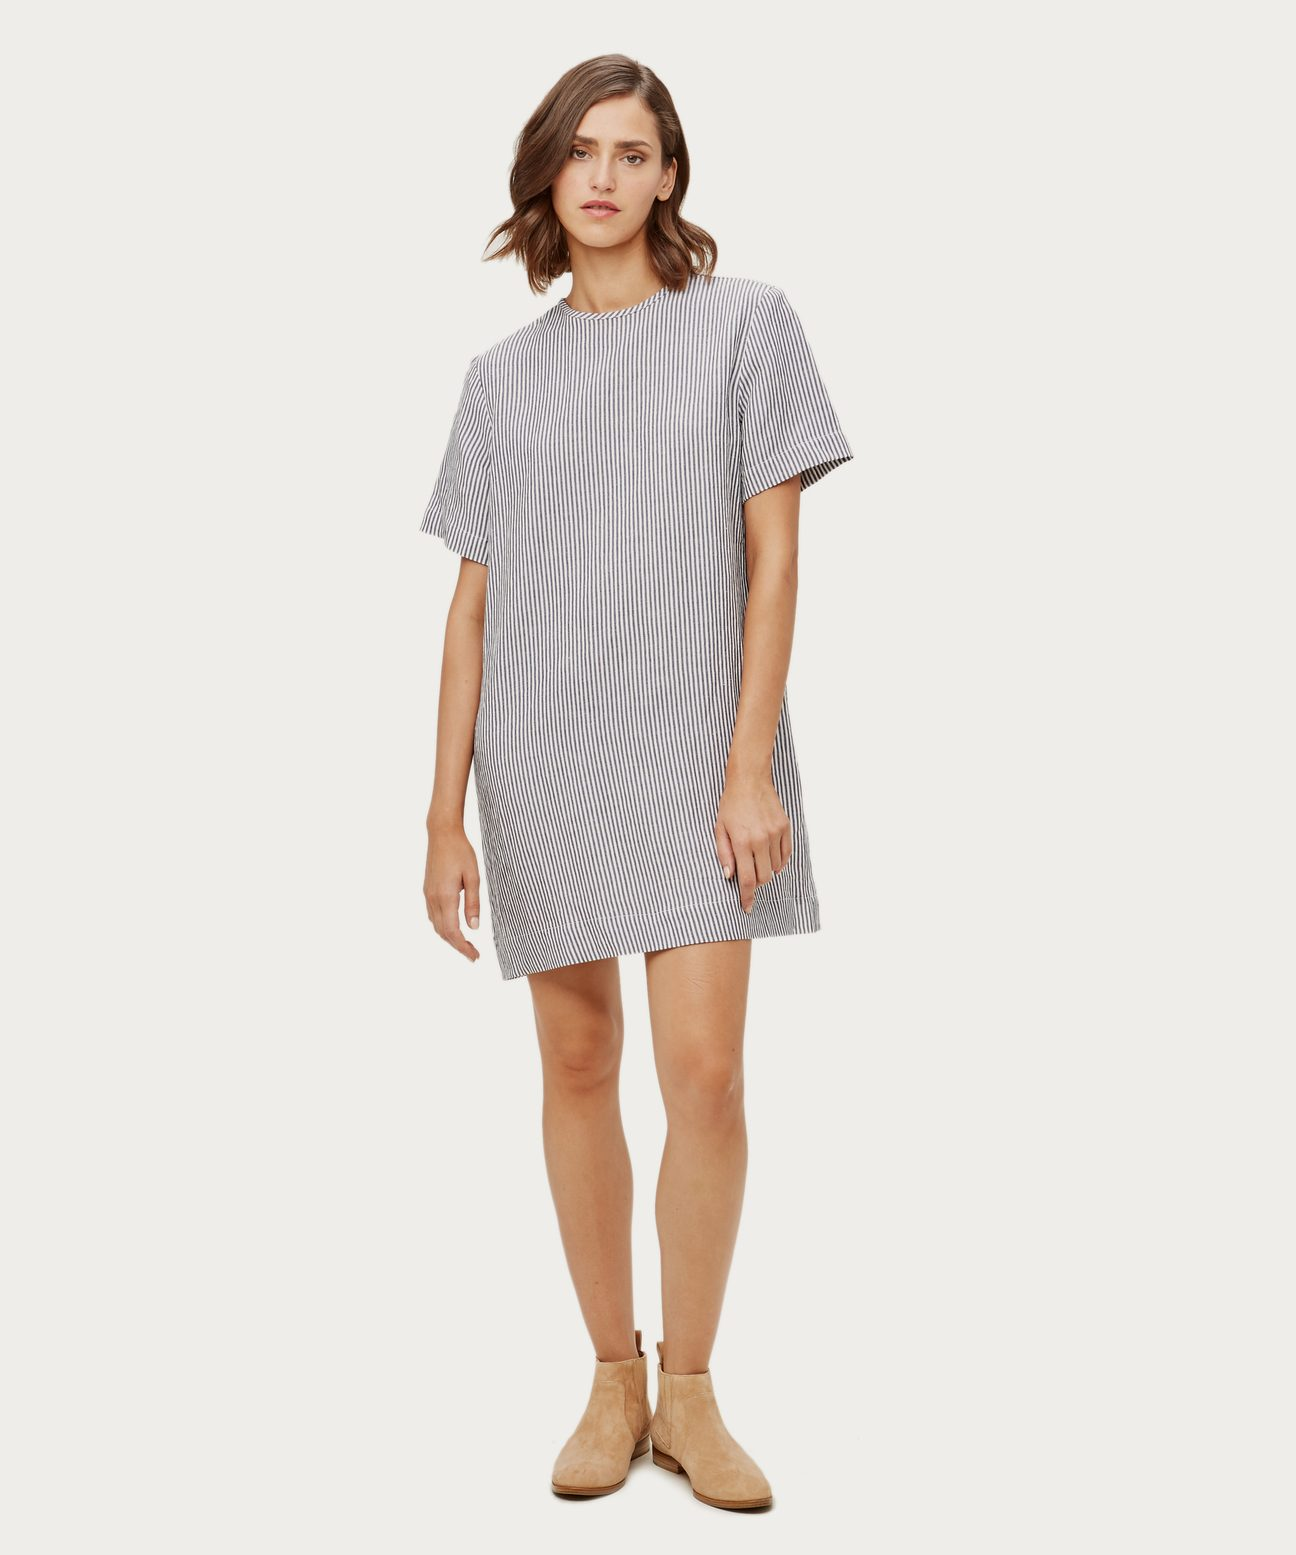 Linen Striped T Shirt Dress Navywhite Jenni Kayne